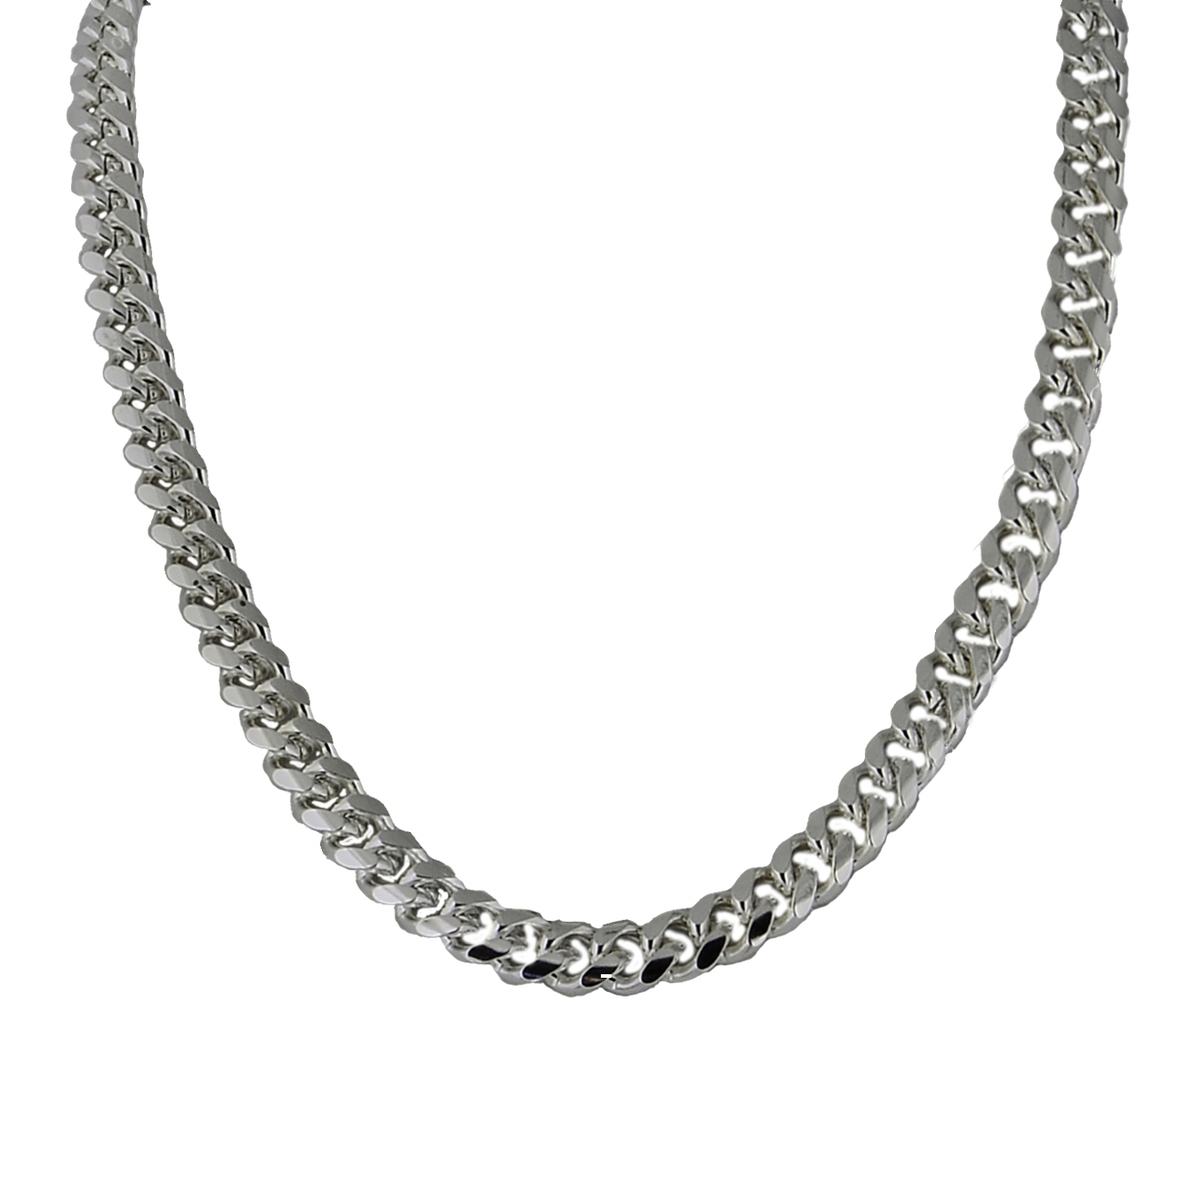 Silver Chain Link Bracelet: Silver Plated Cuban/Curb Link Chain Necklace Or Bracelet